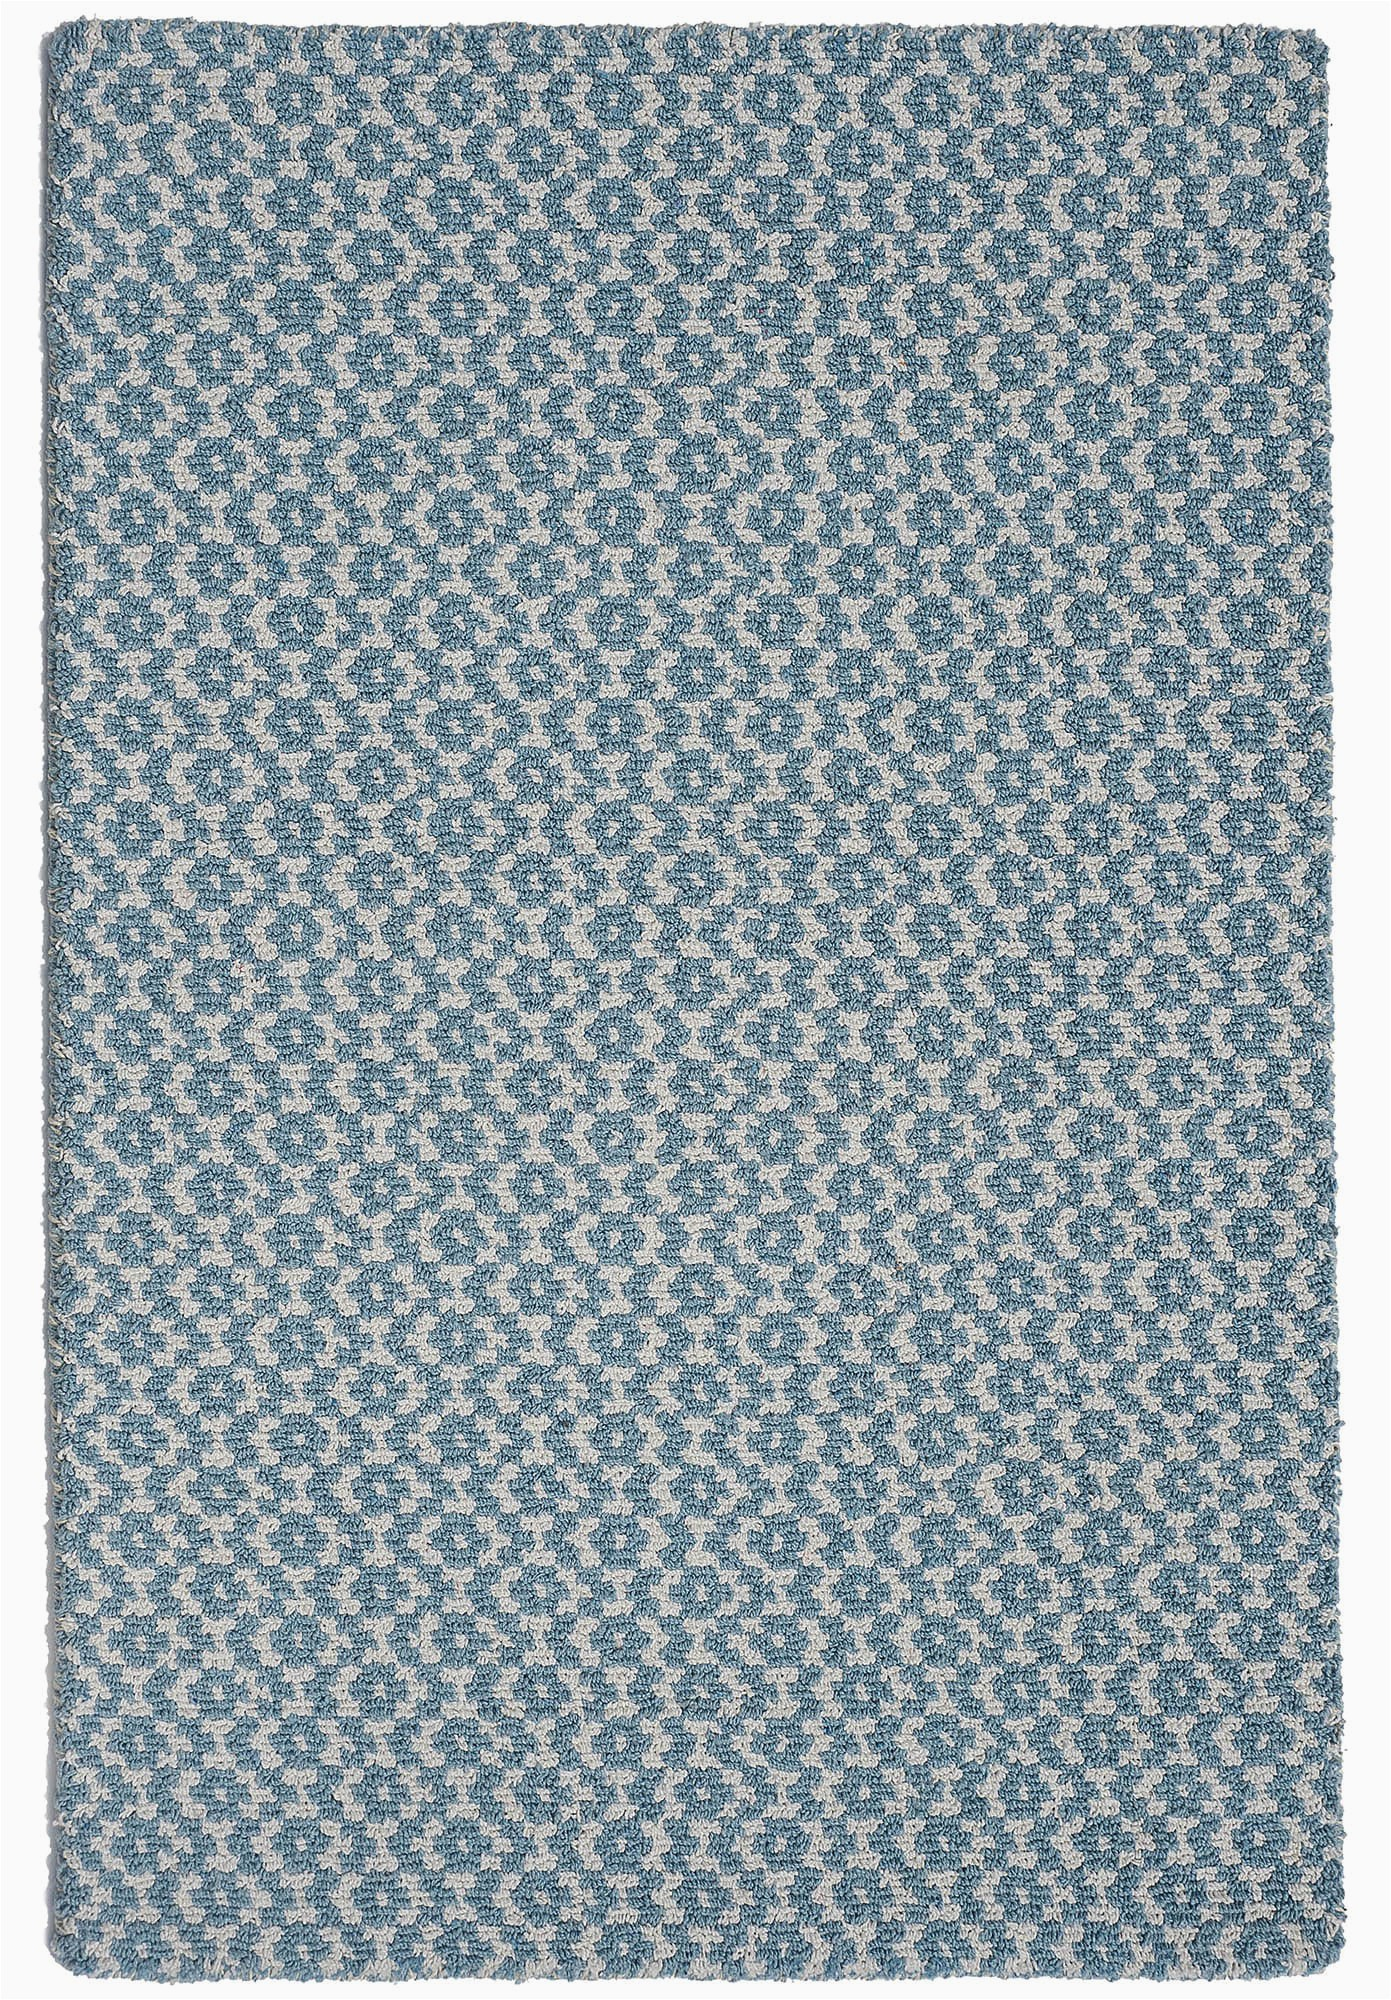 toulouse blue white eco cotton loom hooked rug 023